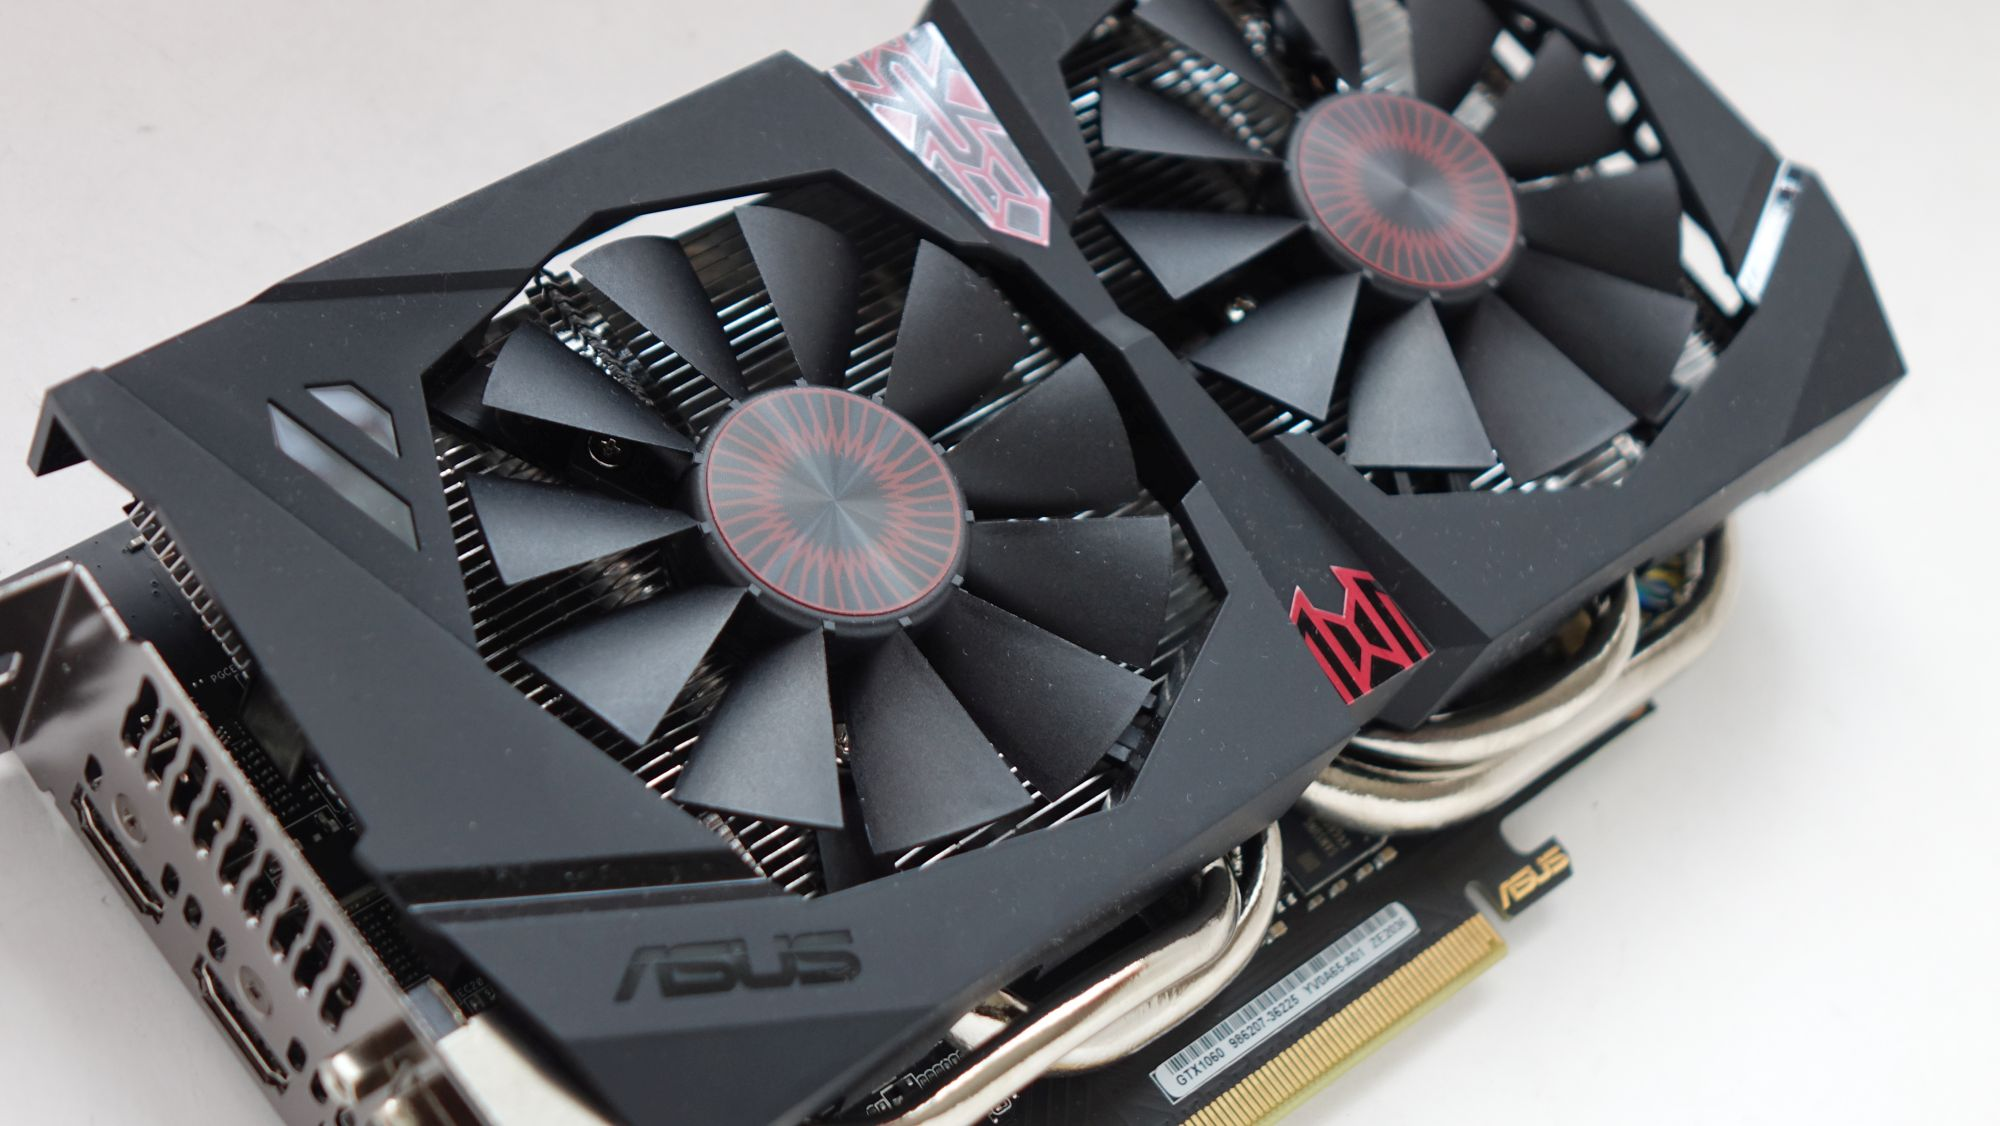 asus gtx 1060 9gbps